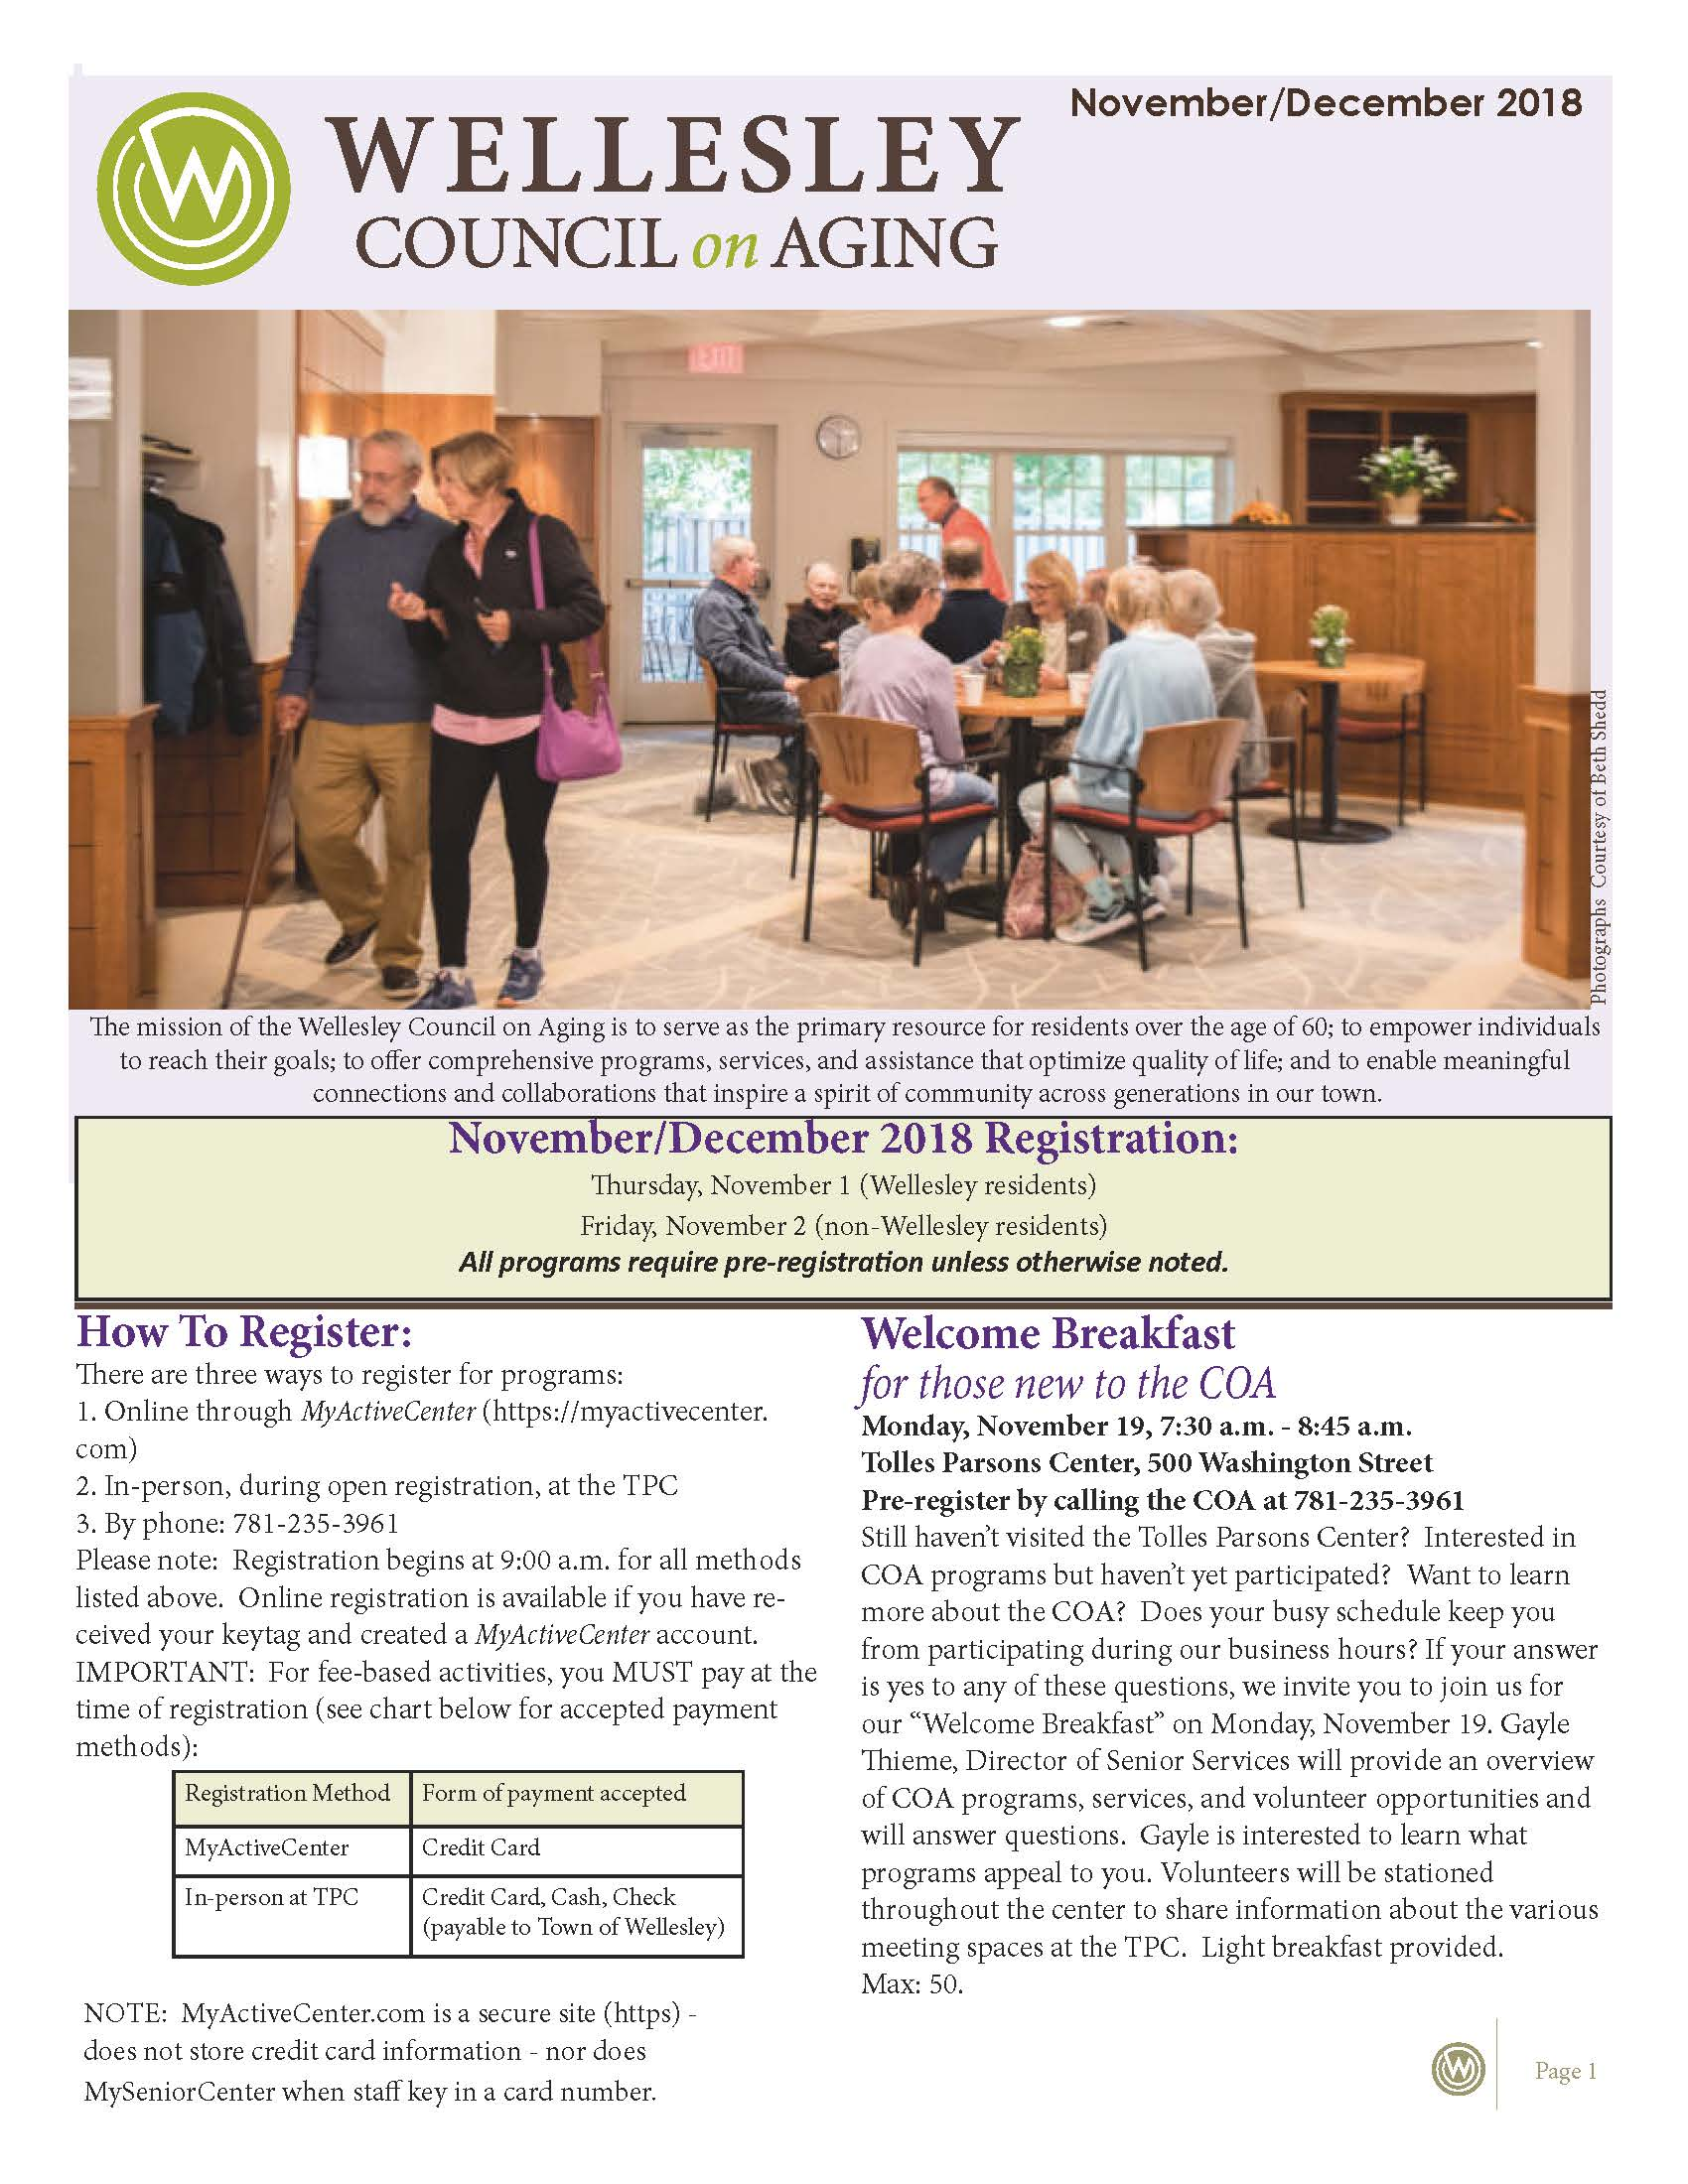 November December 2018 Newsletter Cover